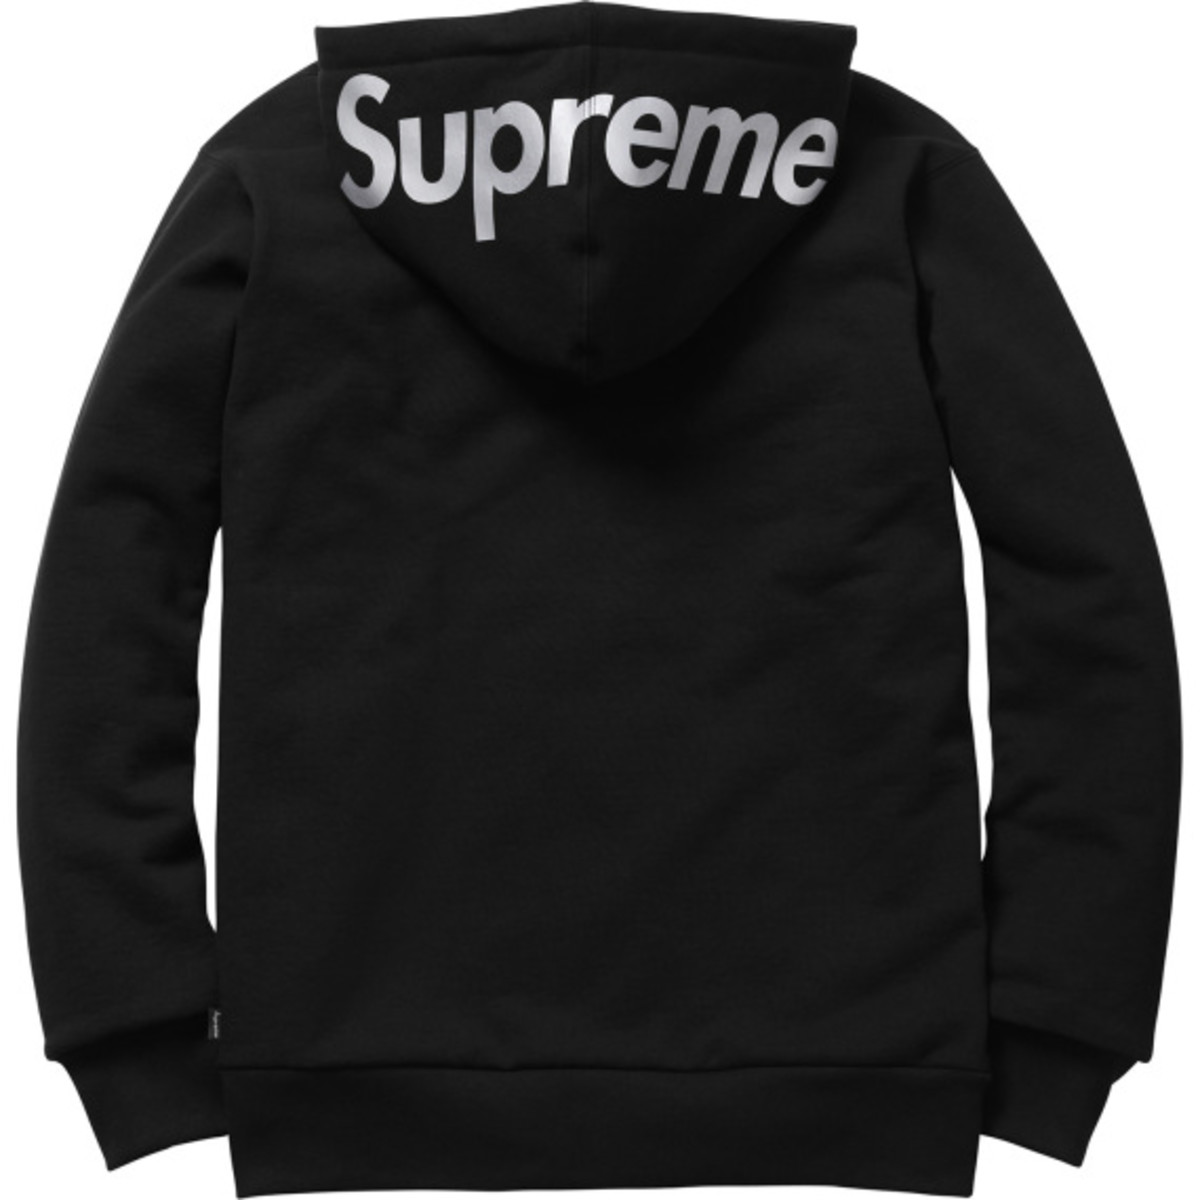 Supreme 3M Reflective Logo Thermal Zip-Up Hoodies | Available Now - 13